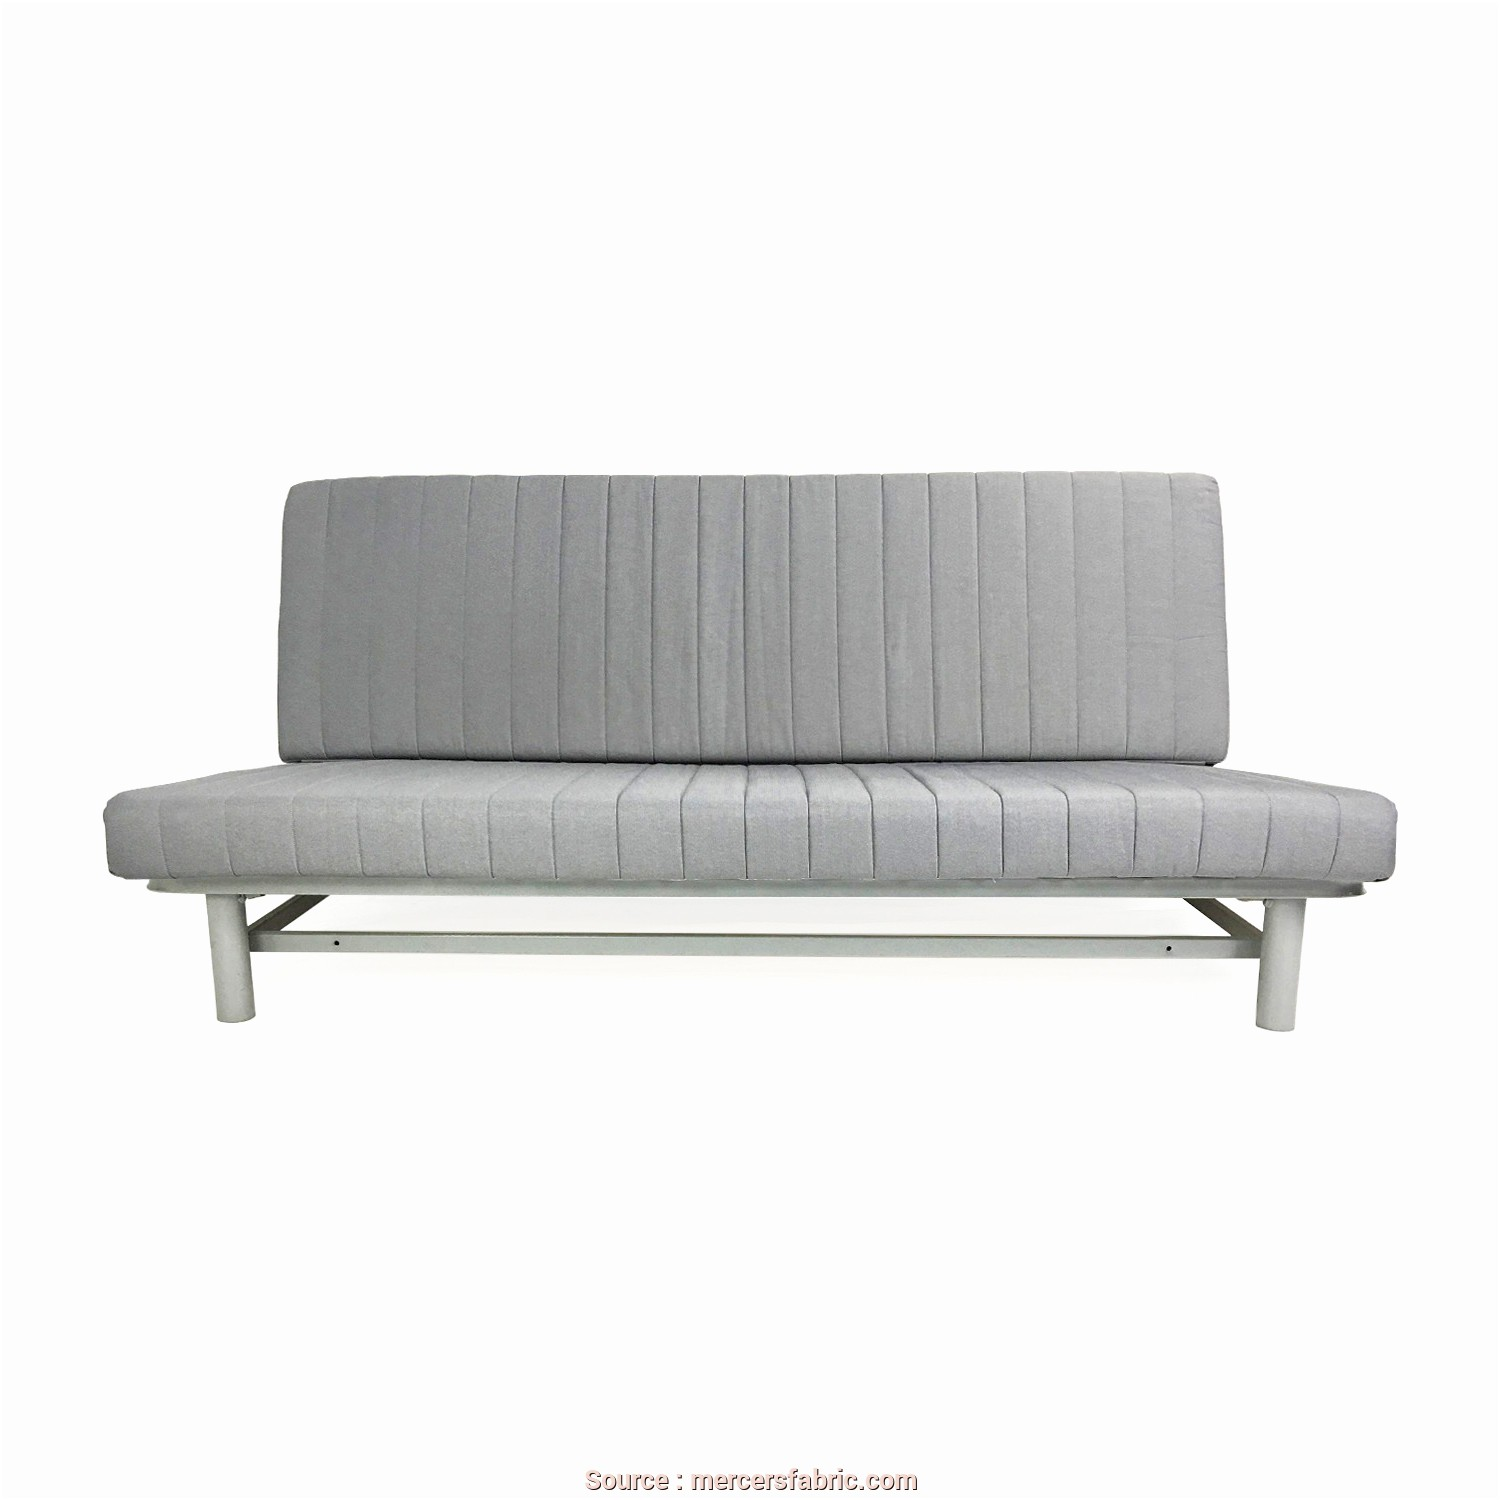 Ikea Futon Slat Replacement, Minimalista Sofas: Comfortable Sofas Design With Futon Ikea, Mercersfabric.Com